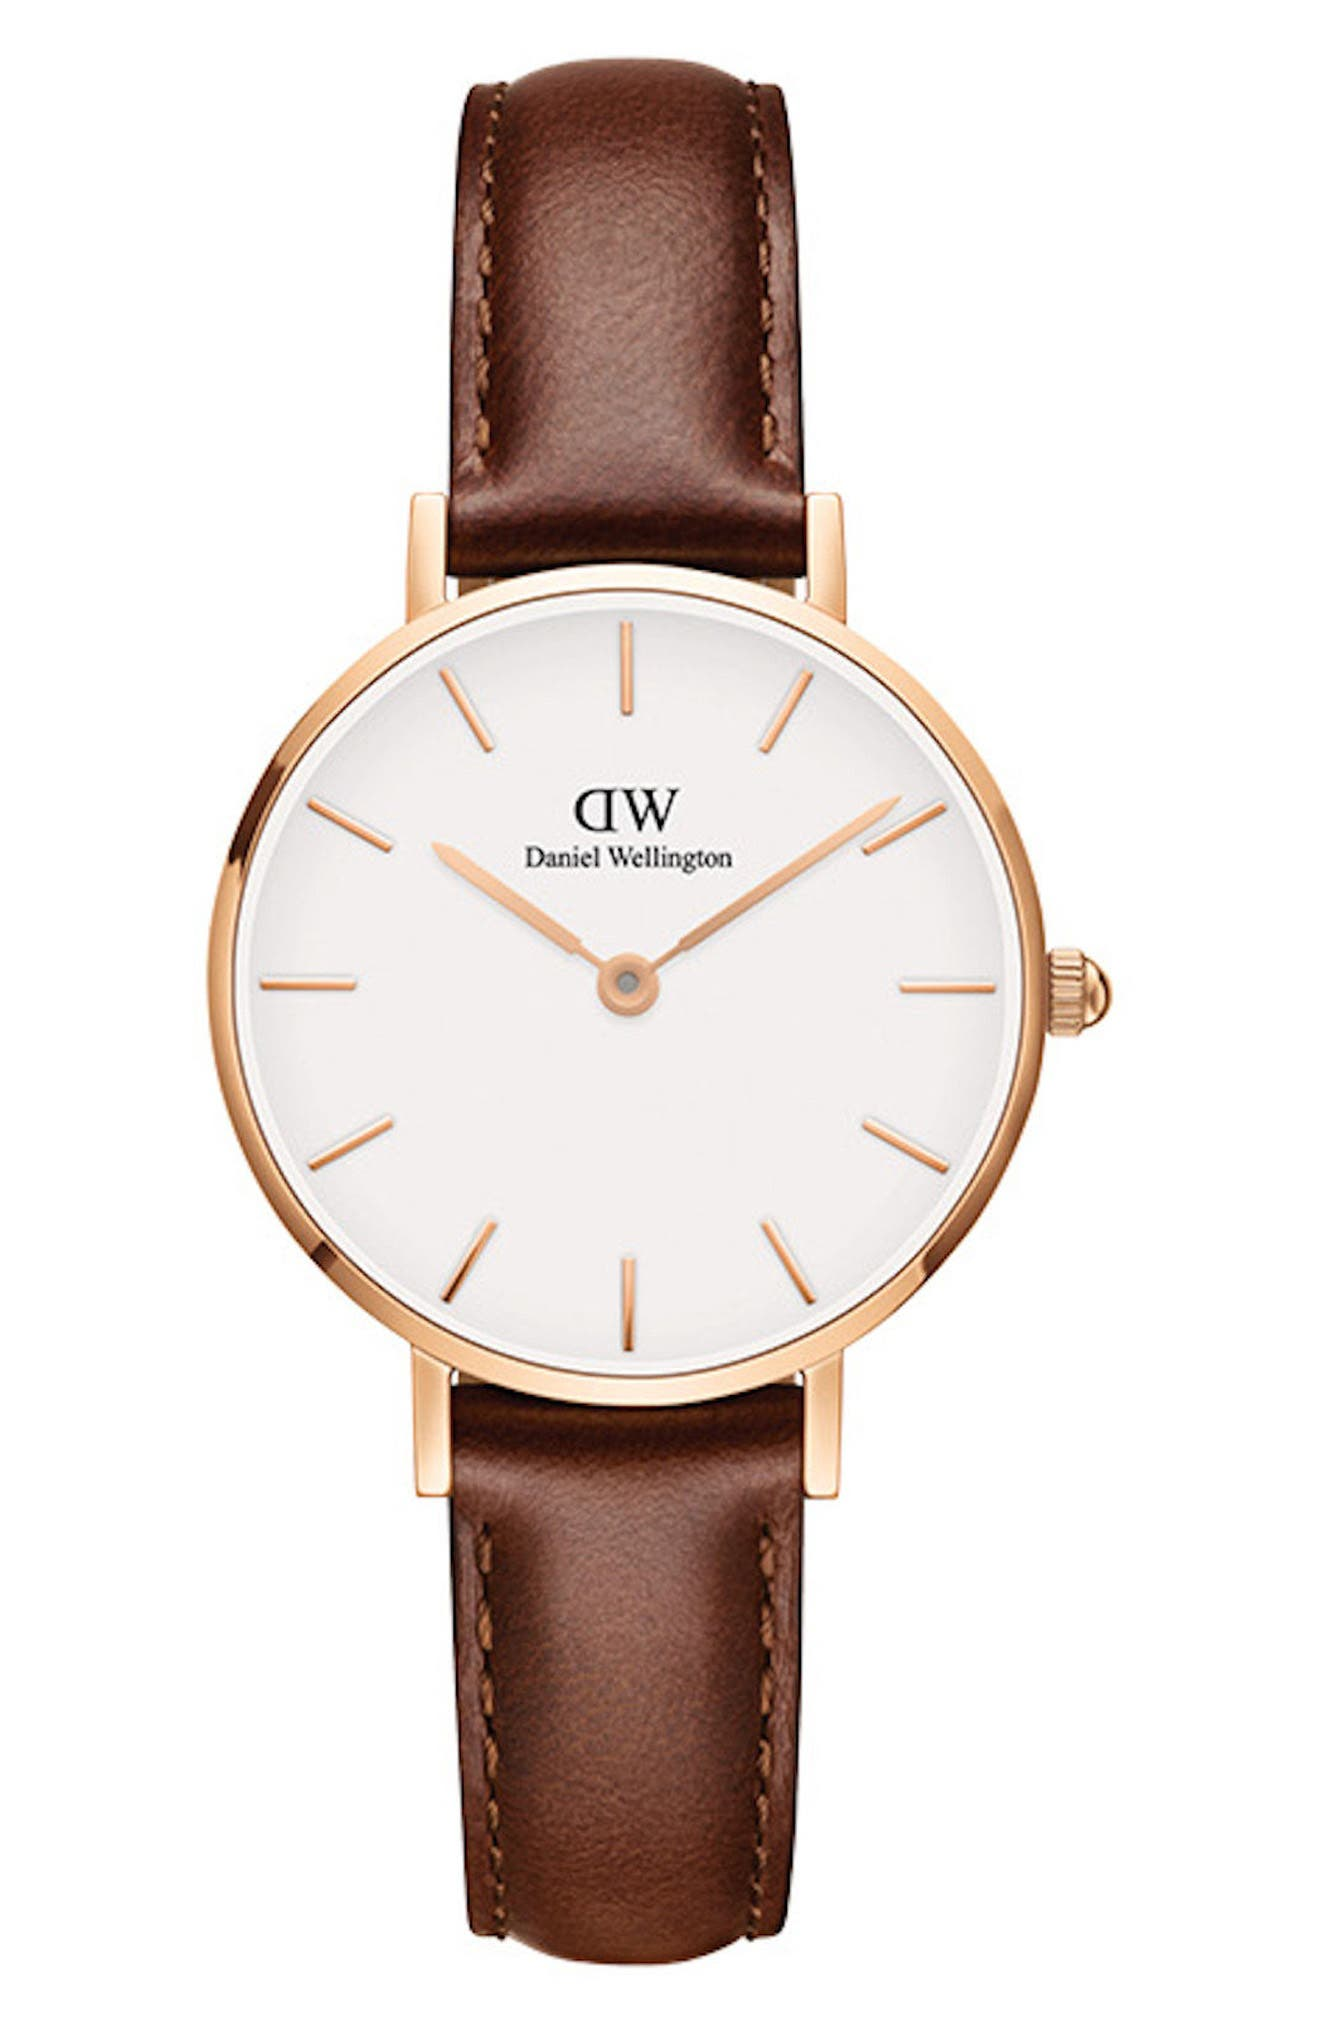 DANIEL WELLINGTON, Classic Petite Leather Strap Watch, 28mm, Main thumbnail 1, color, BROWN/ WHITE/ ROSE GOLD